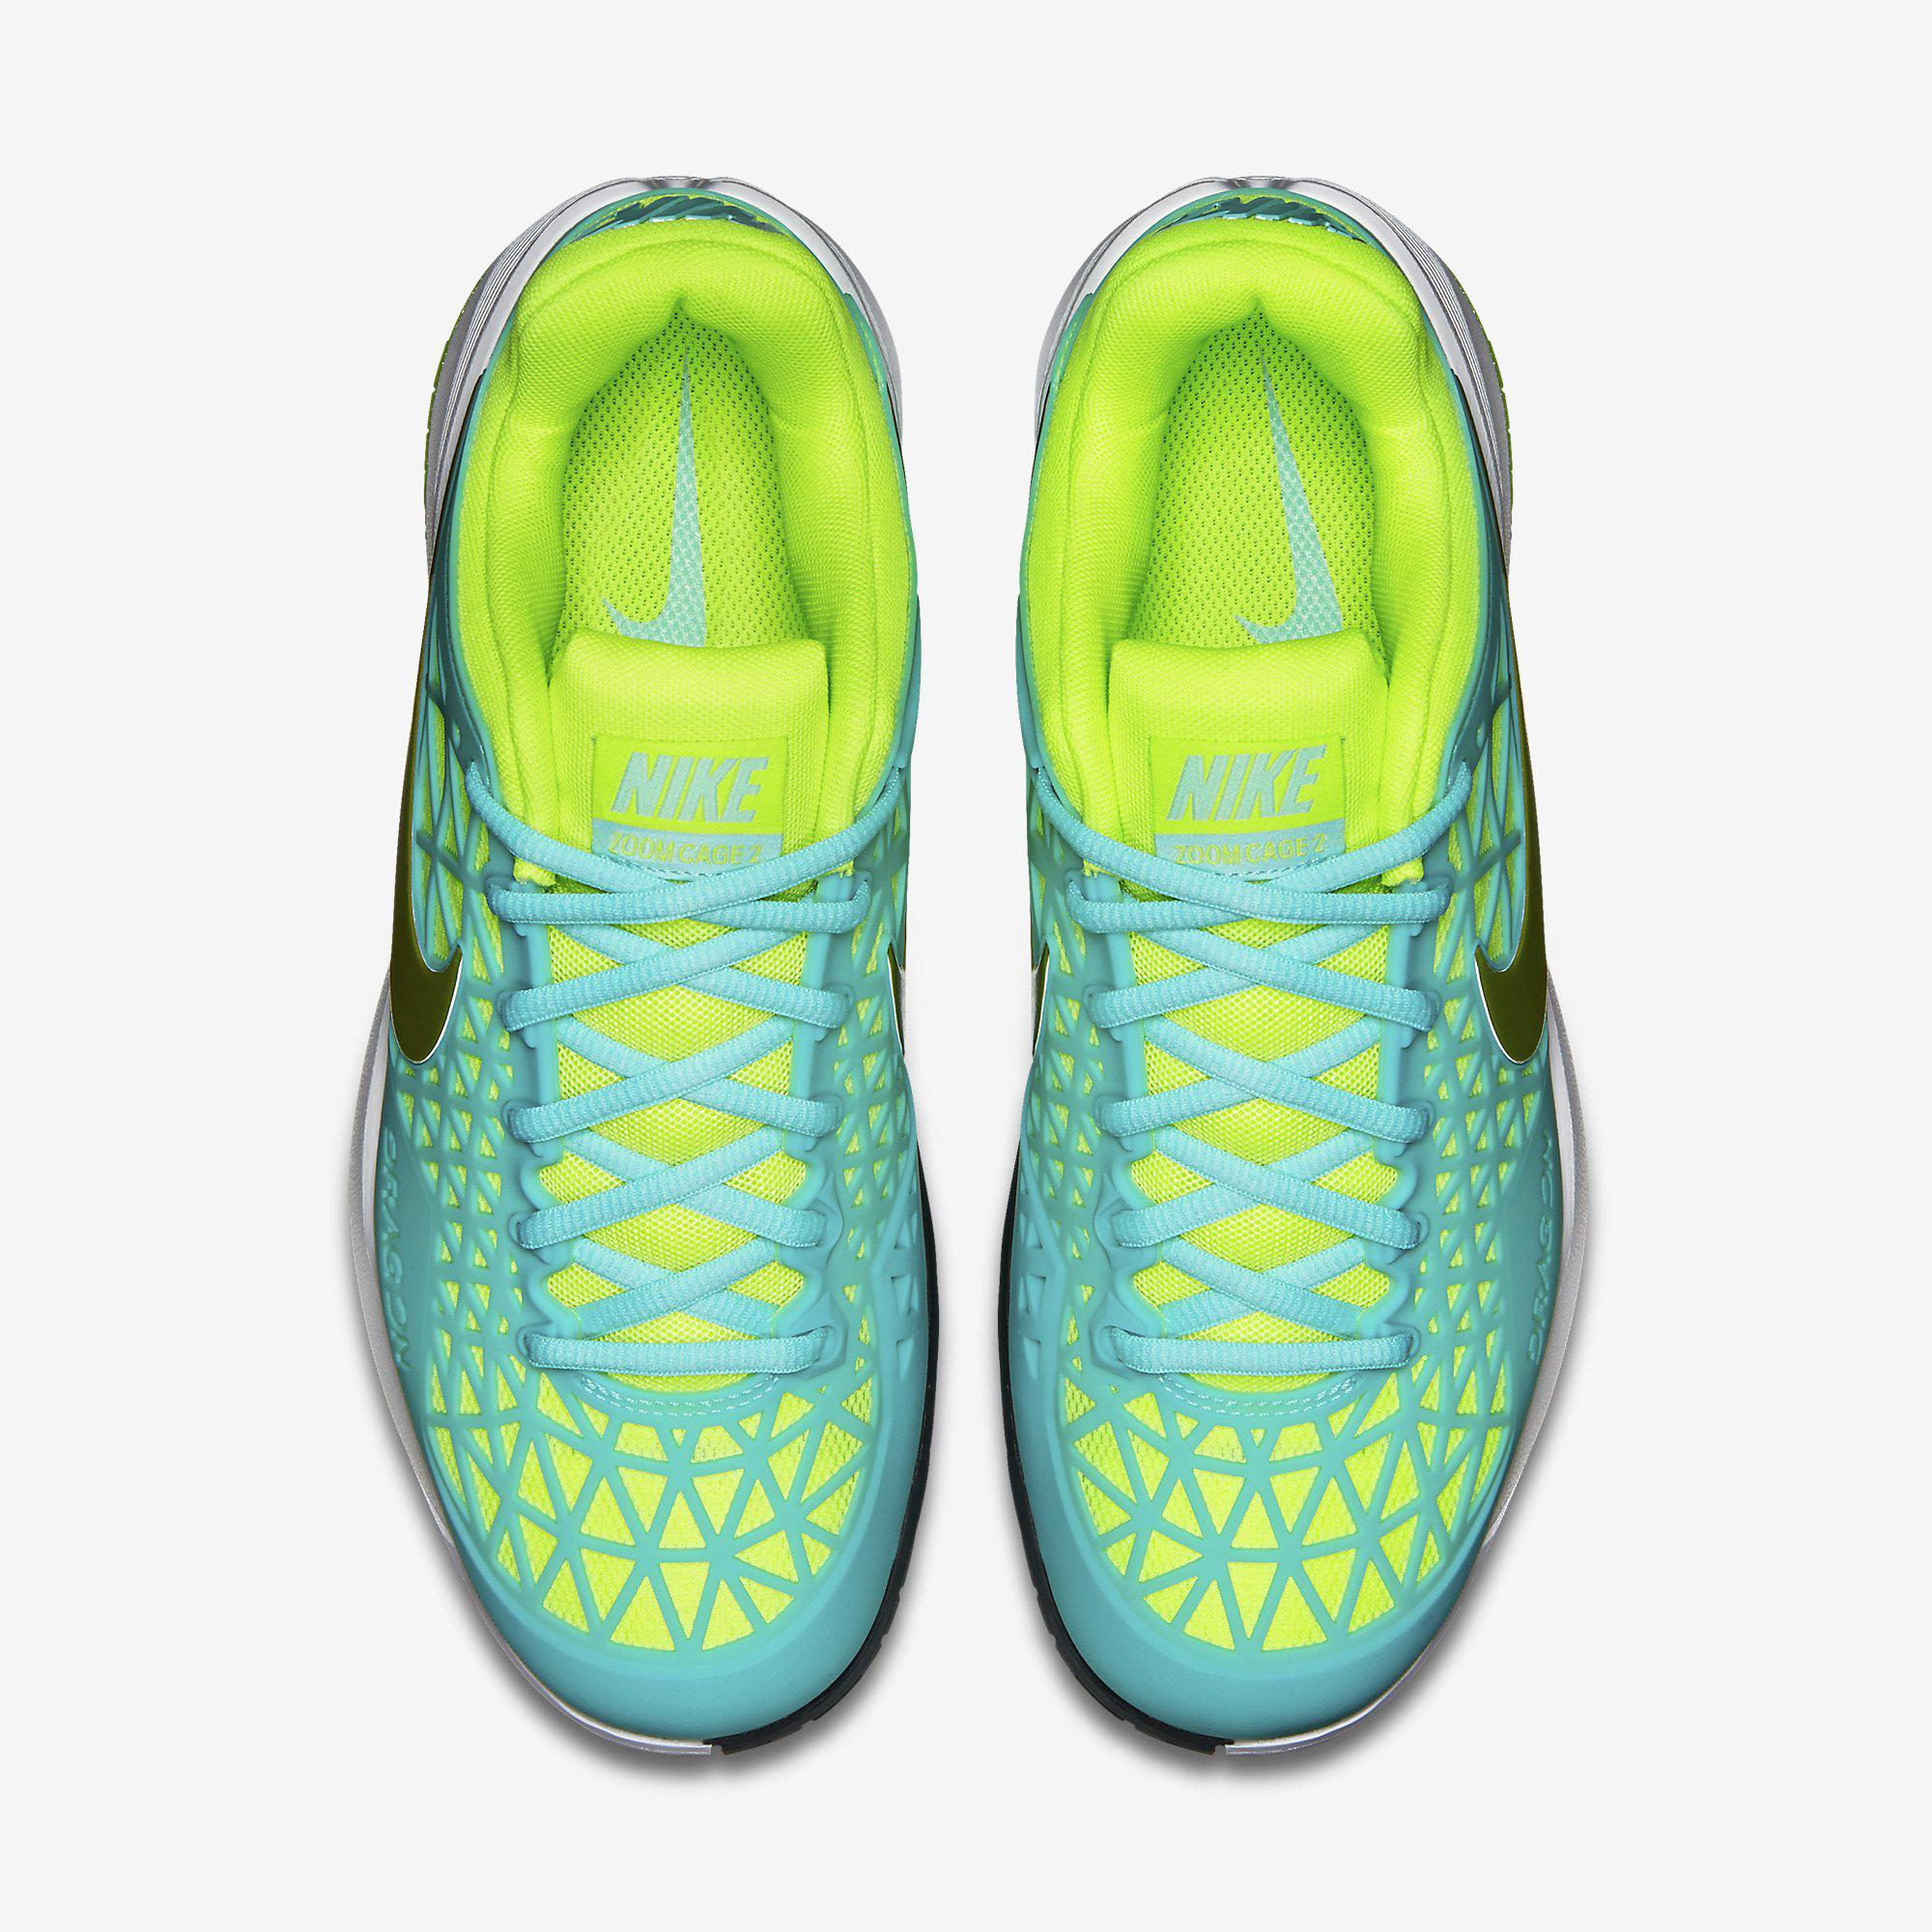 43453f3c73af Nike Womens Zoom Cage 2 Tennis Shoes - Light Aqua White - Tennisnuts.com